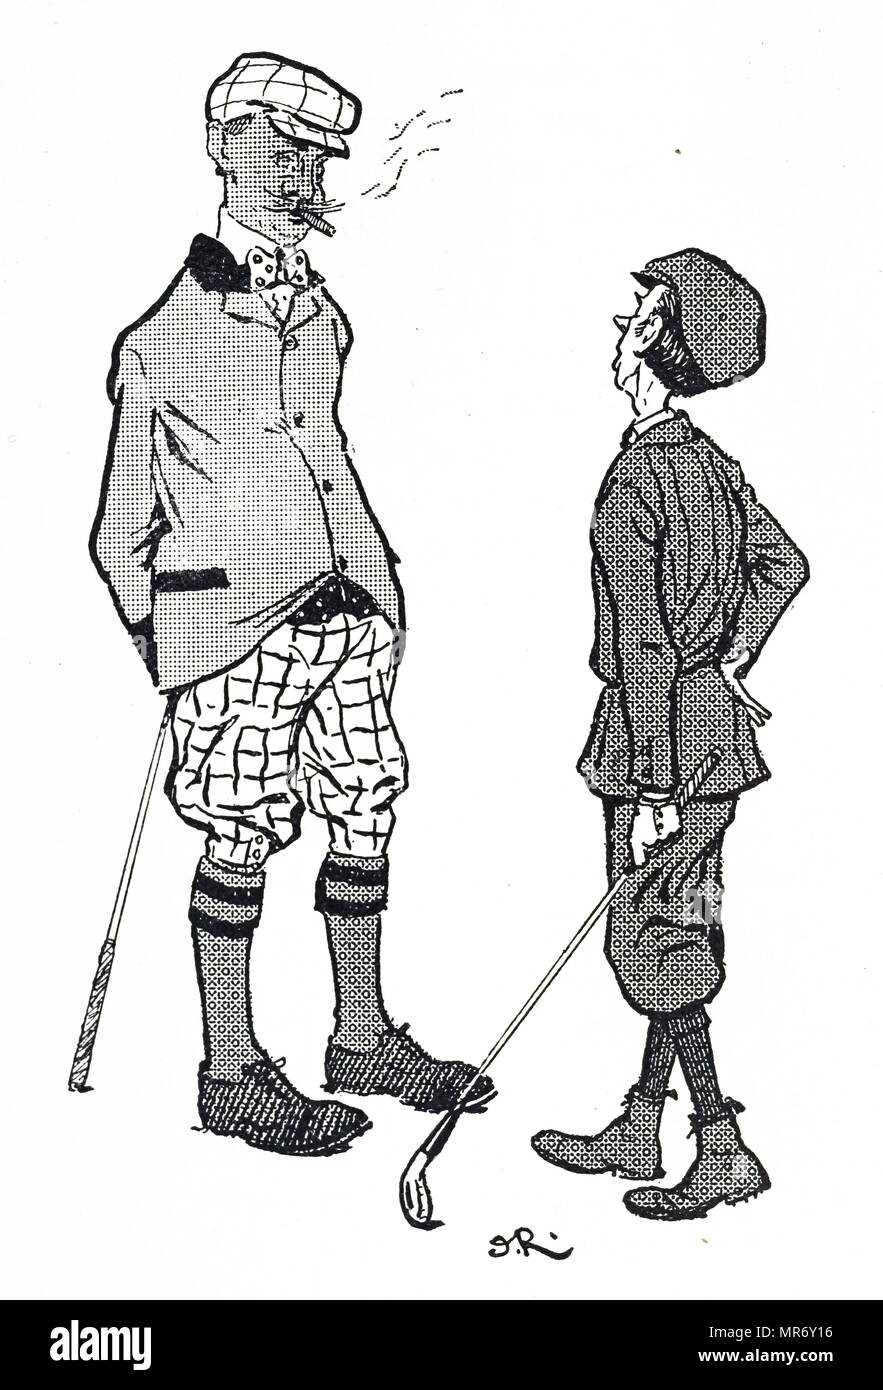 Cartoon depicting golfing fashion during the early 20th century. Dated 20th century - Stock Image